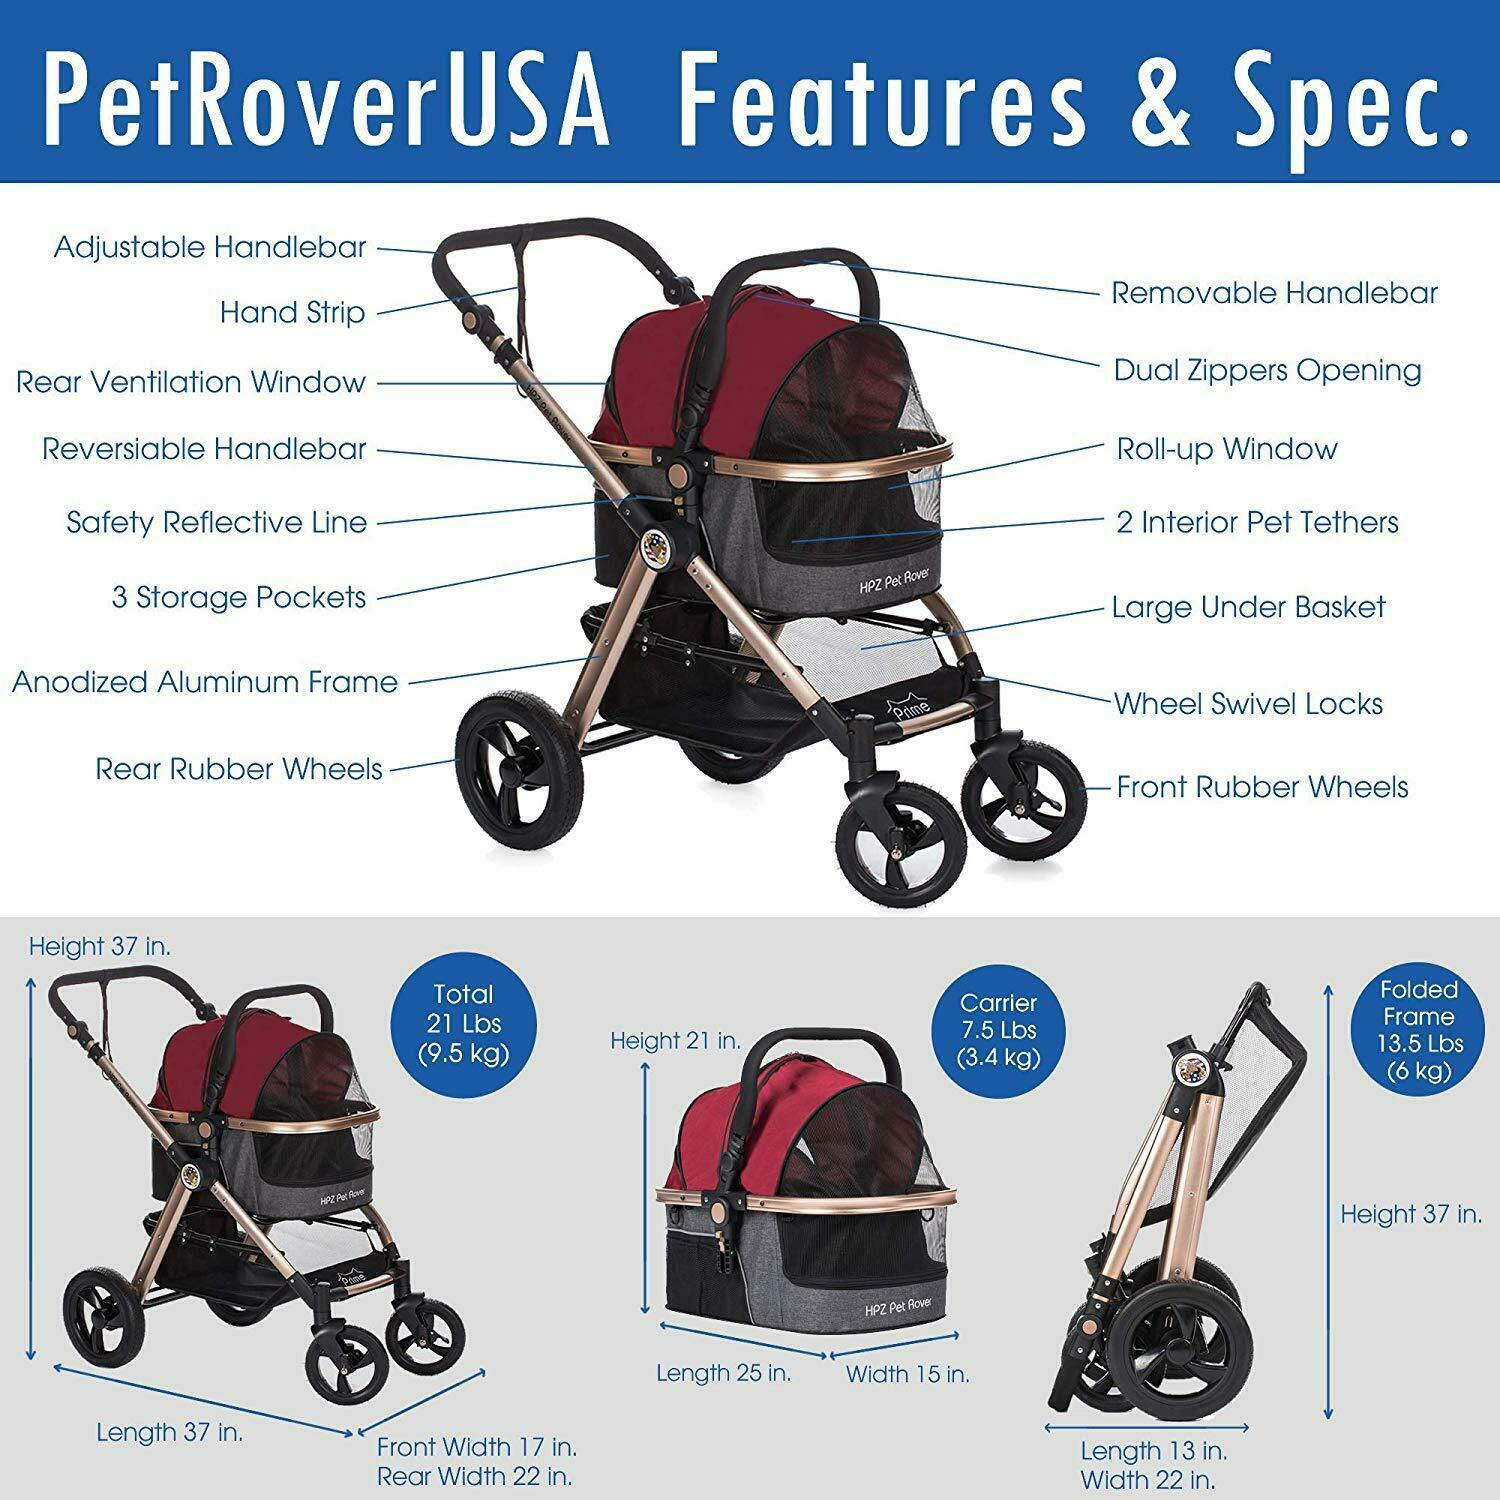 HPZ Pet Rover Prime 3-in-1 3-in-1 3-in-1 Luxury Dog Cat Pet Stroller Travel Carrier + Car Seat 22a7c4